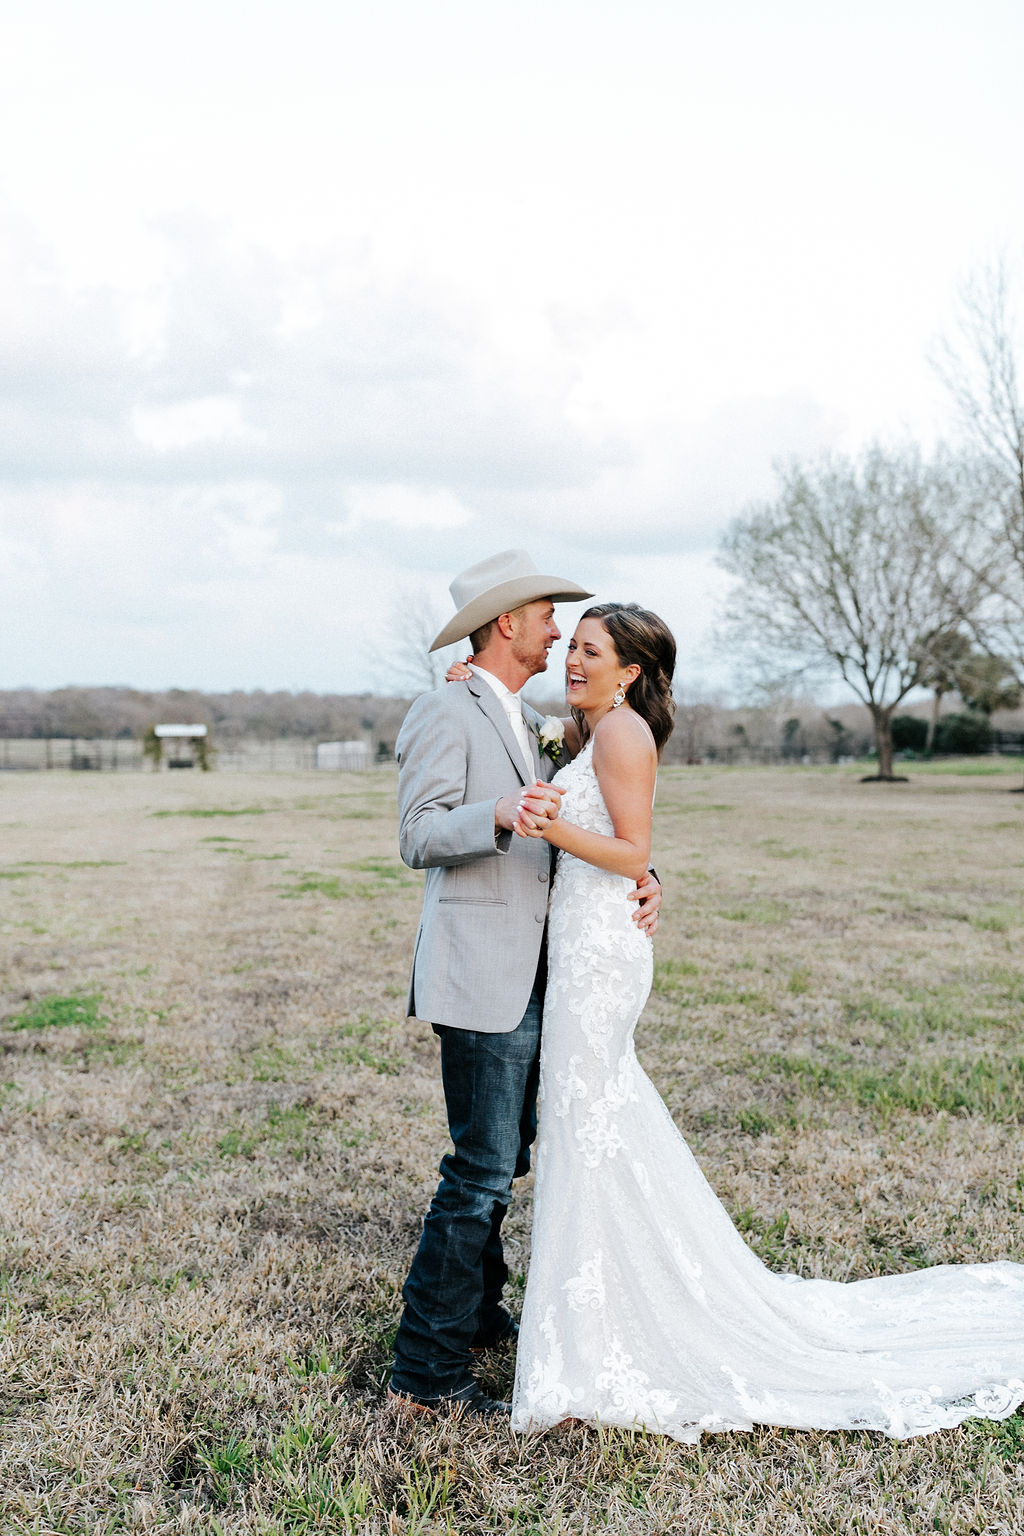 Epoch Co+ Destination wedding planner | First Look Photo Ideas with Groom | Bride + Groom Photography Posing | Velvet + Wire Photography | Austin Wedding Planner